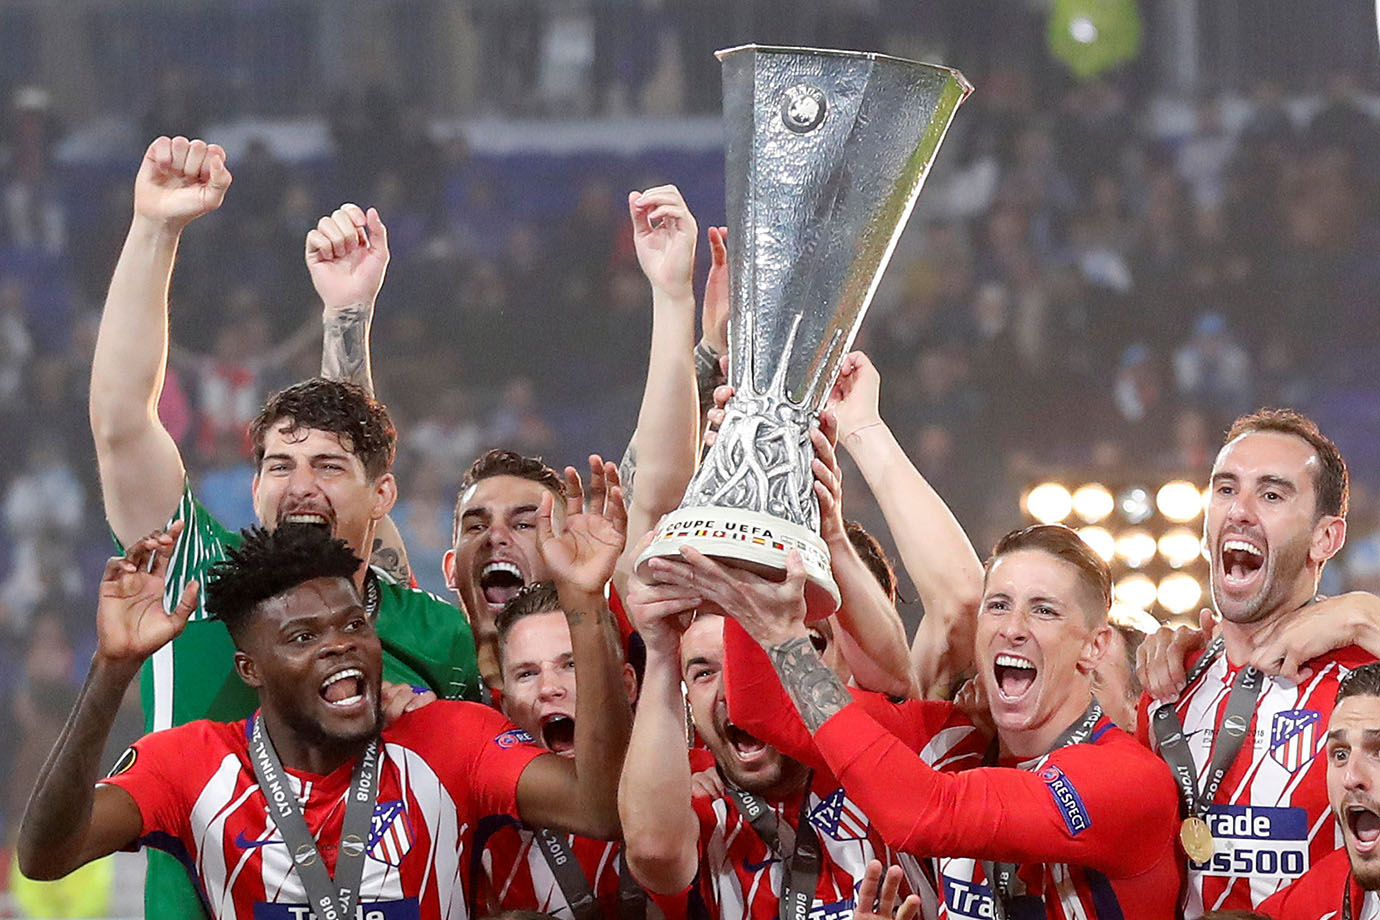 Atletico Madrid's Gabi and Fernando Torres lift the trophy as they celebrate winning the Europa Leag